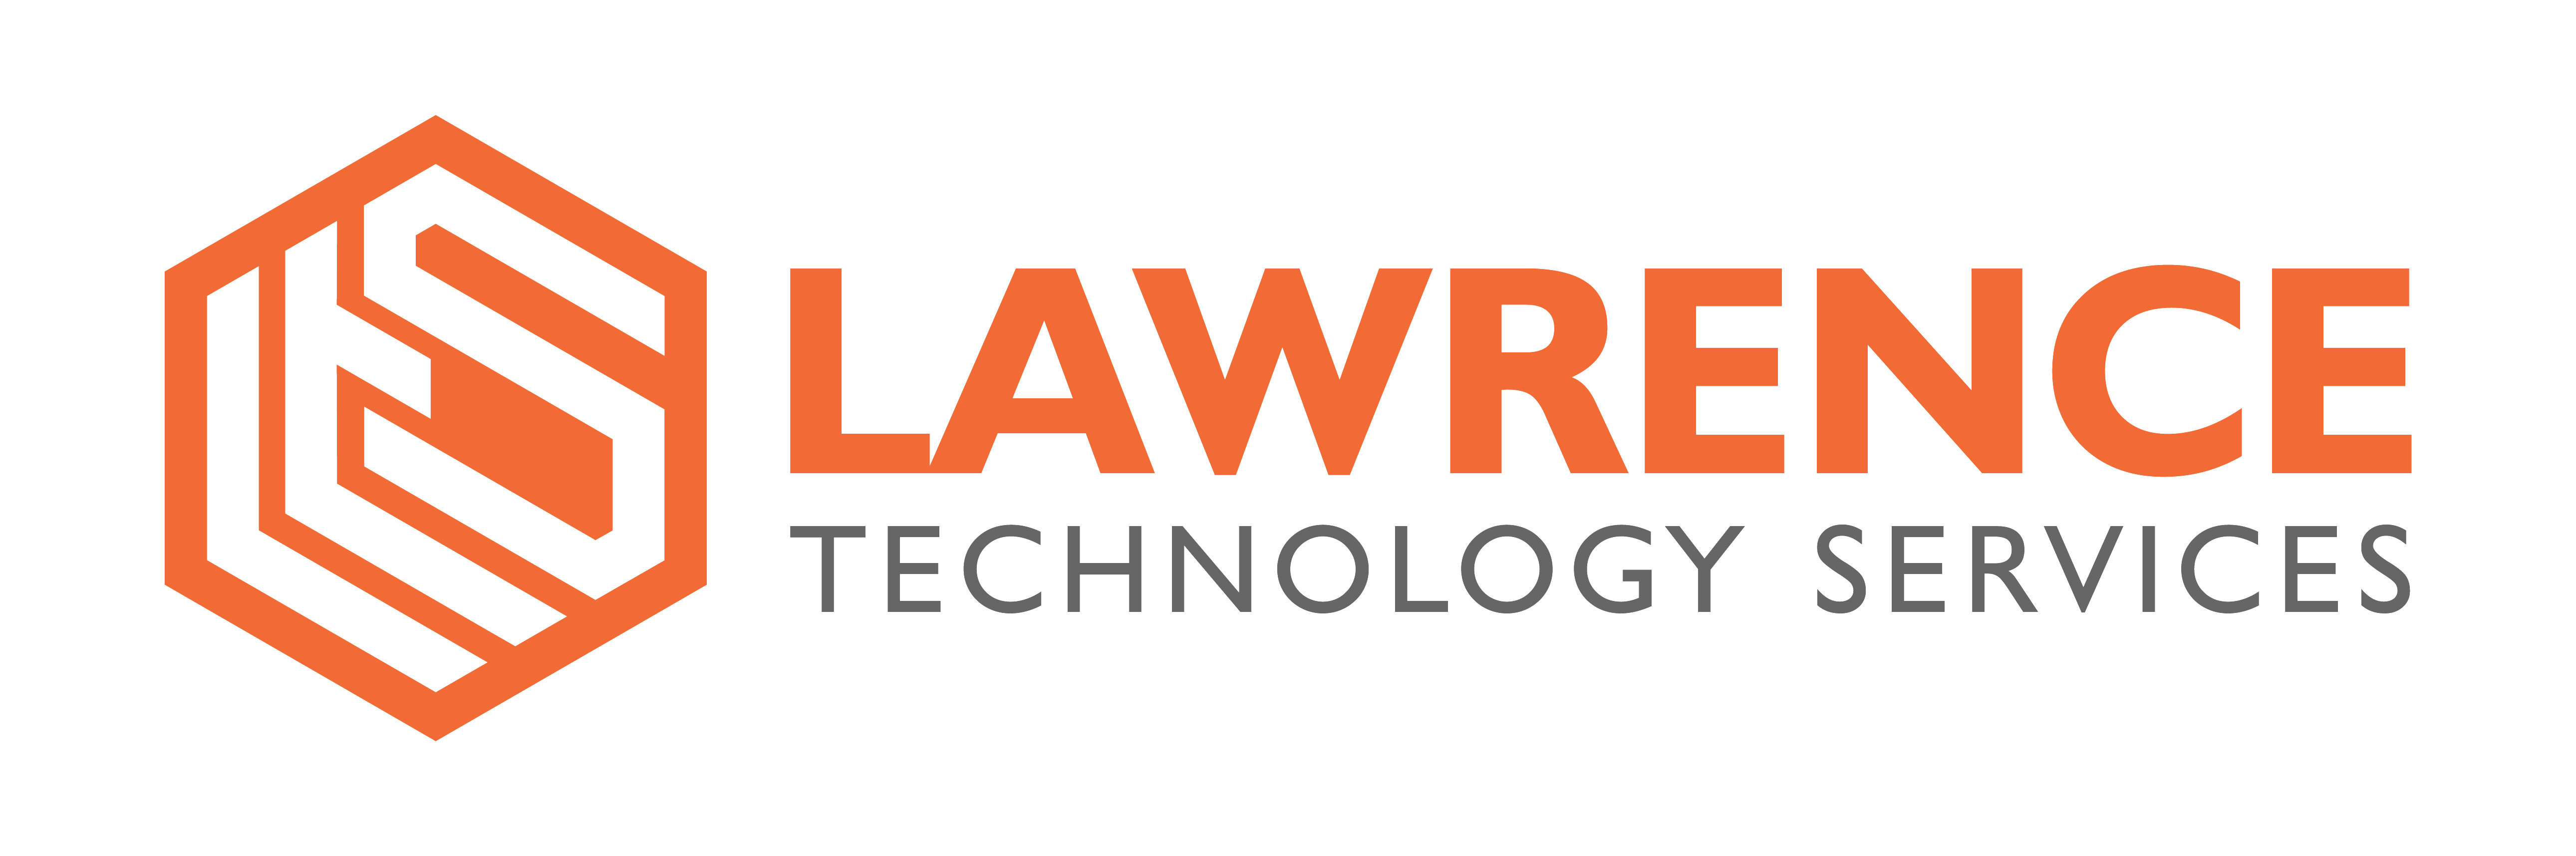 Email Copy: Lawrence Technology Services Email Newsletter